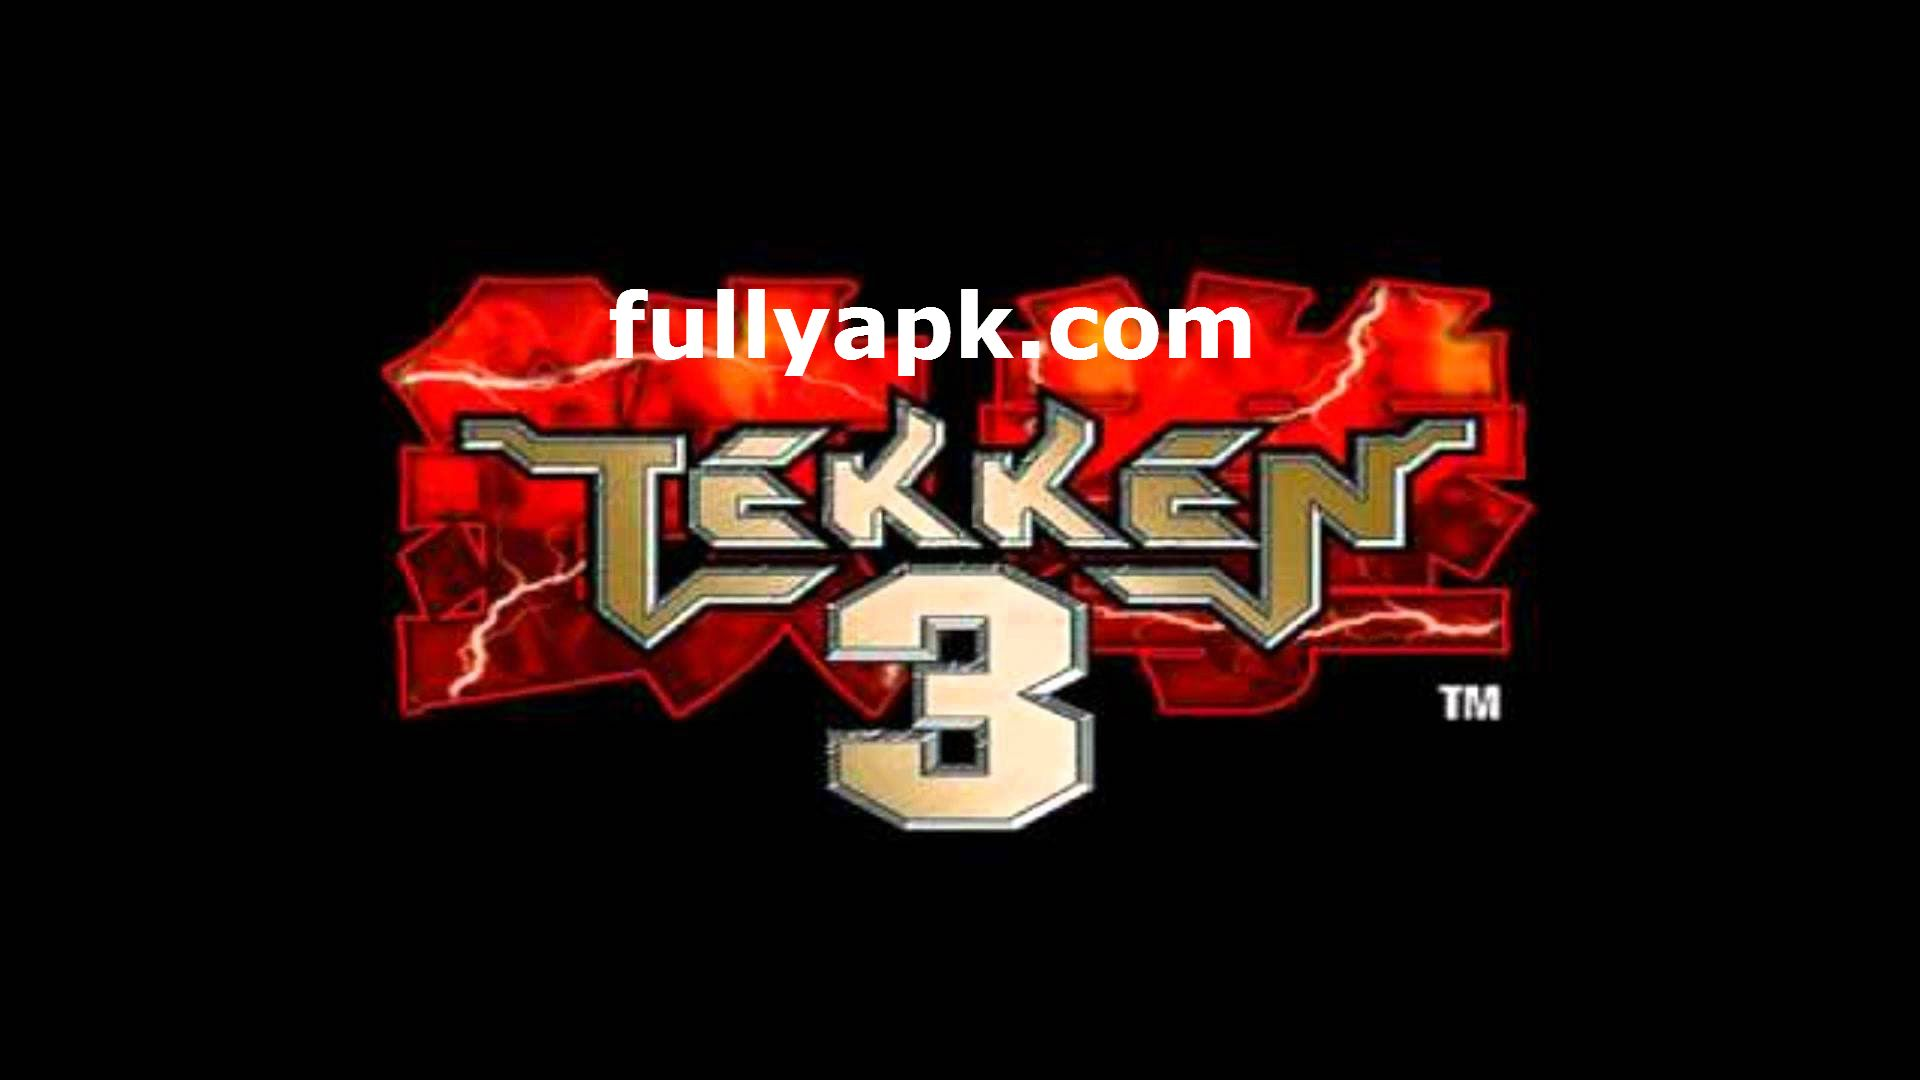 Taken 3 Apk Android Latest Game Is Given It Is Very Popular